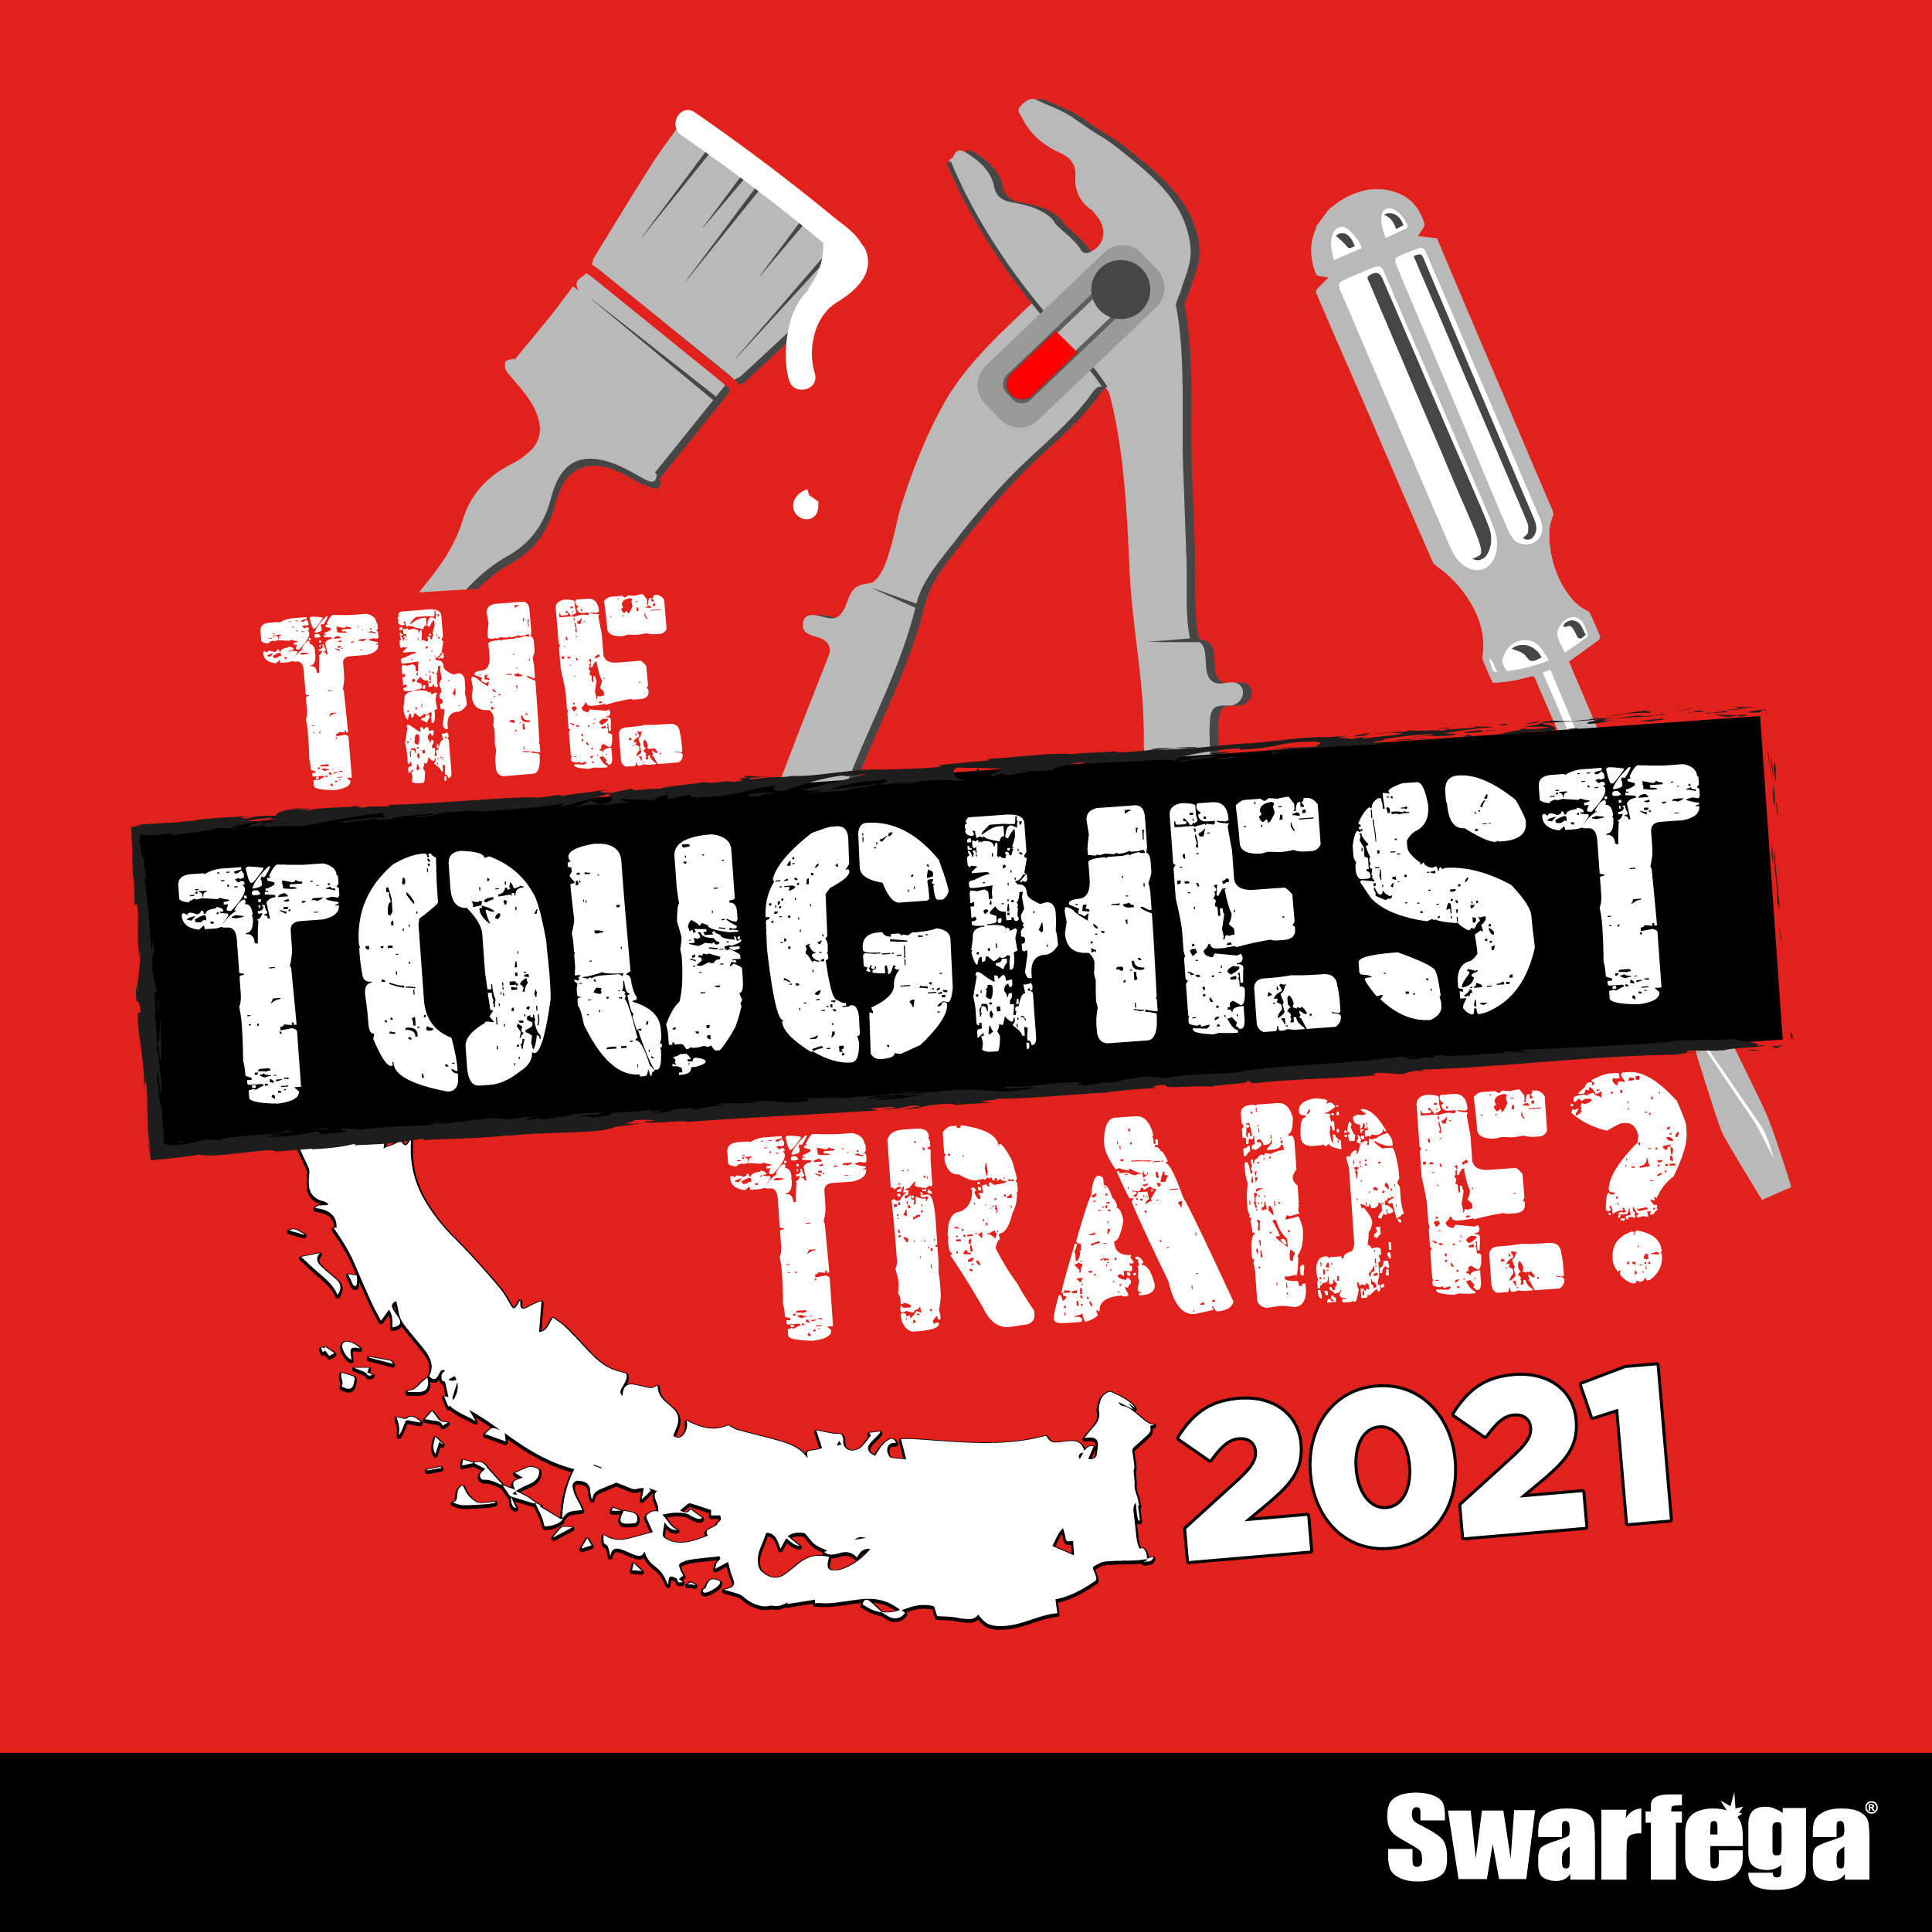 For the fourth year running, Swarfega is once again on the hunt for the Toughest Trade in the UK